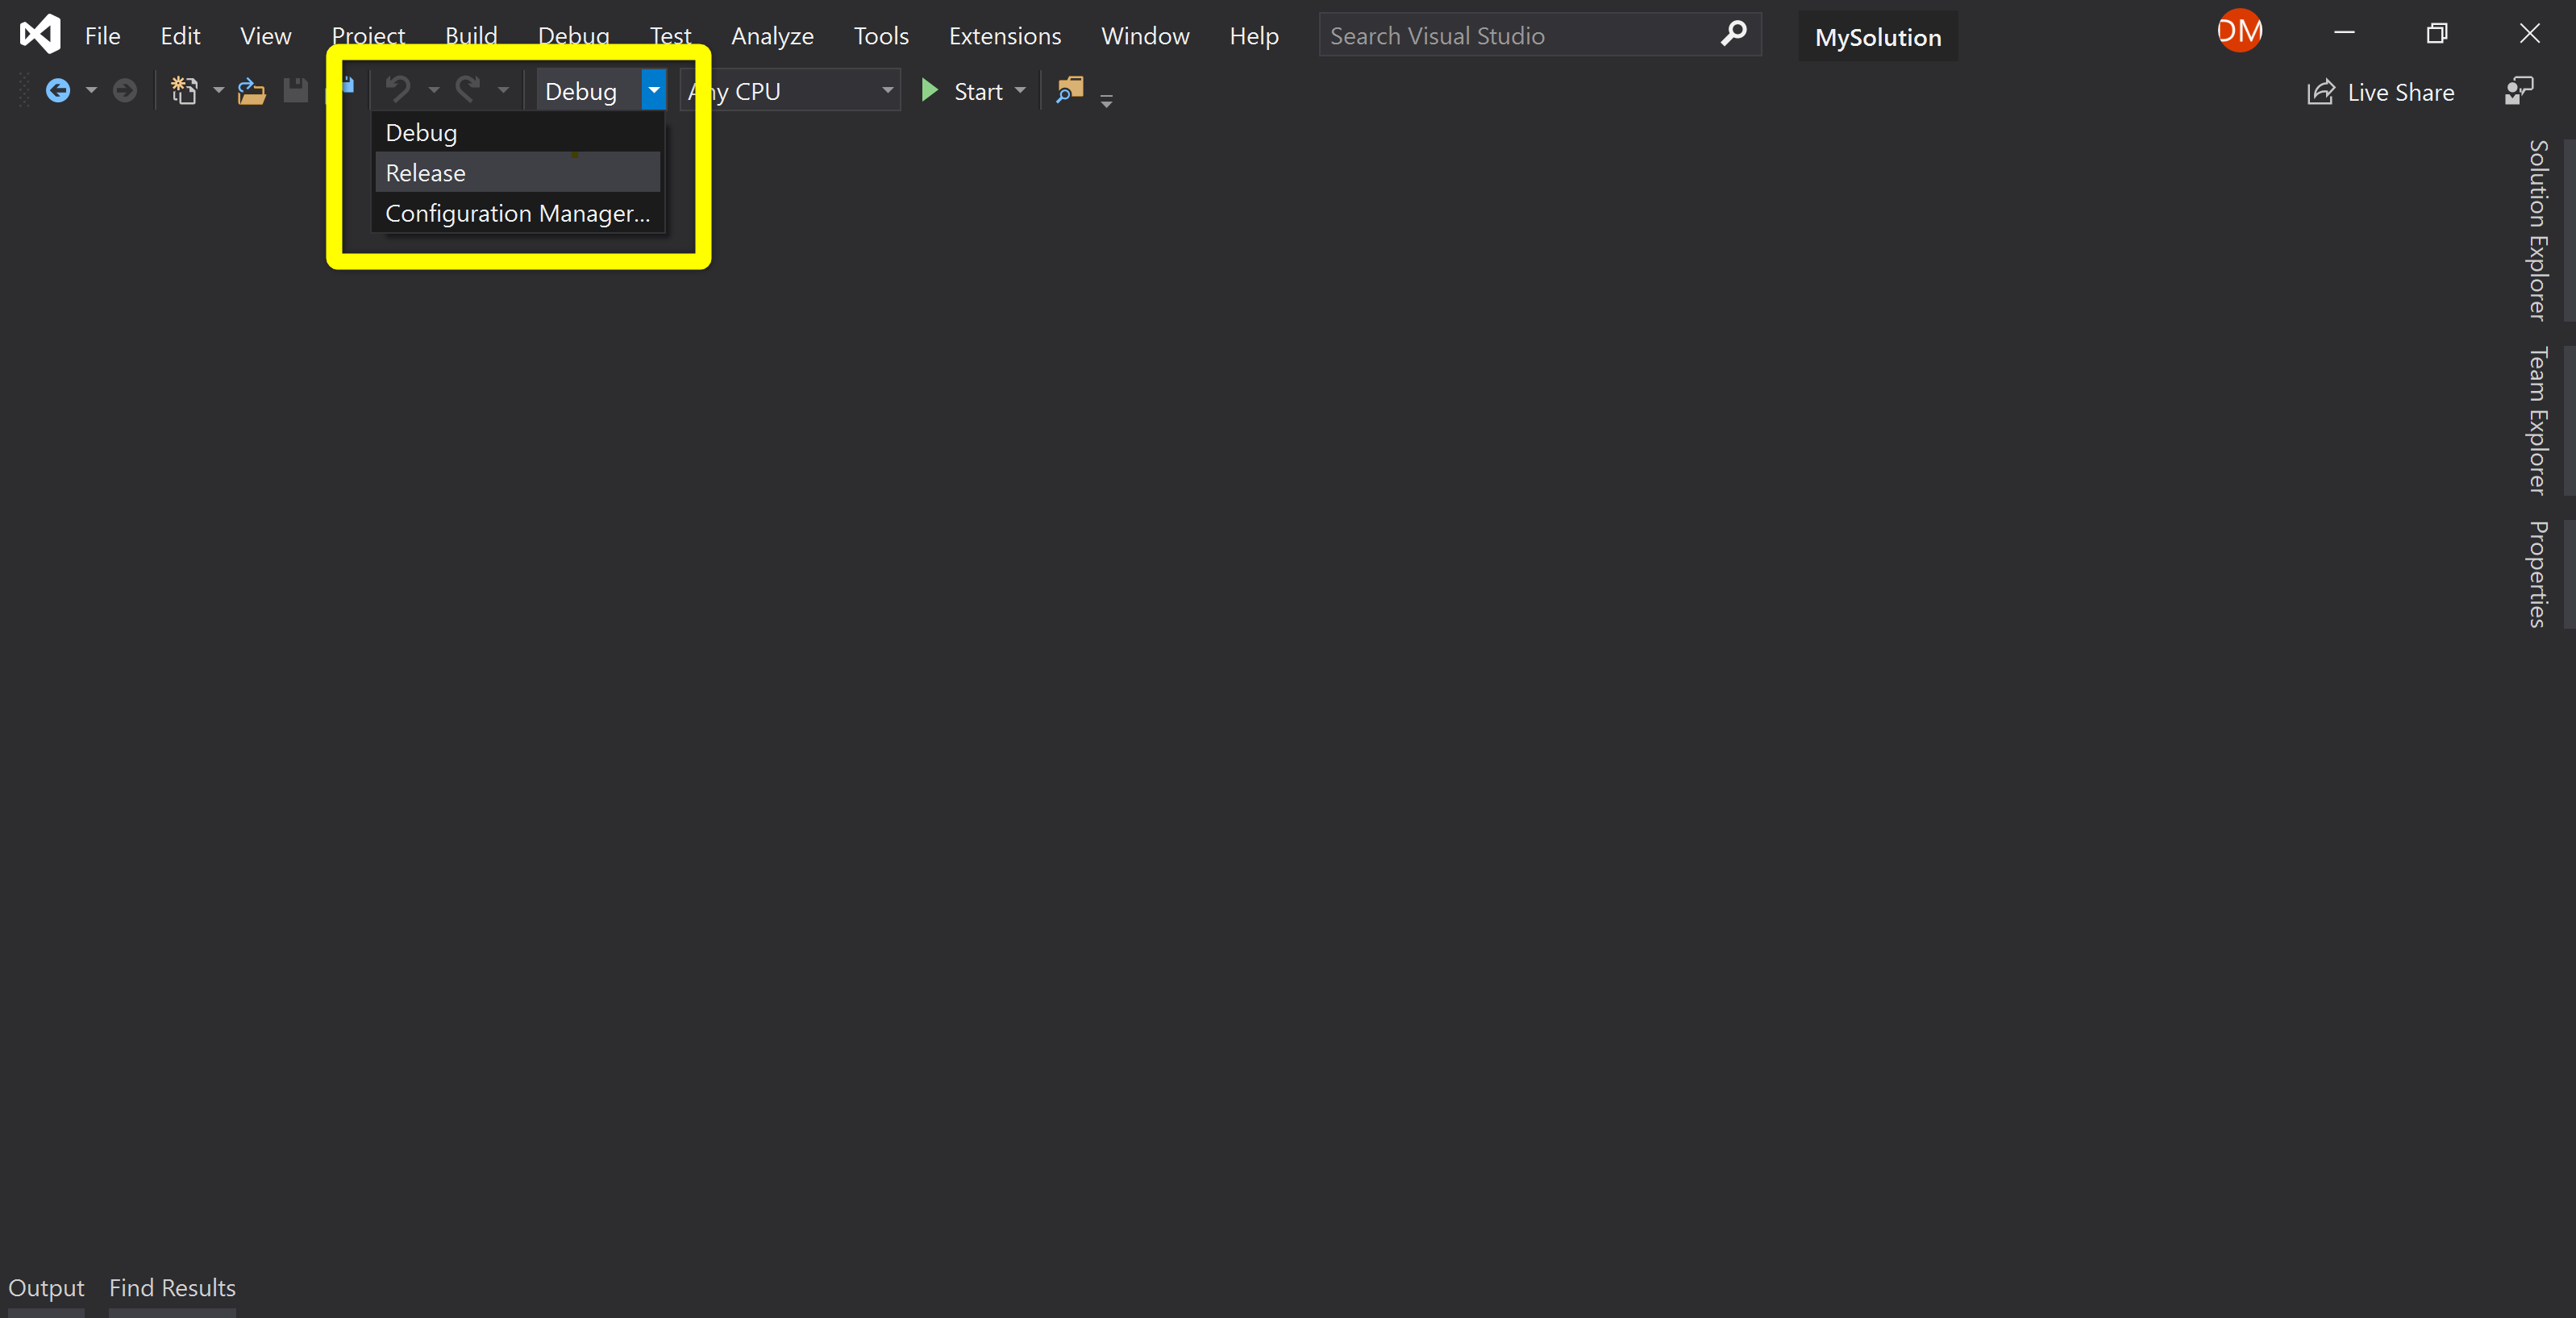 Visual Studio's configuration can be changed from the Standard toolbar.